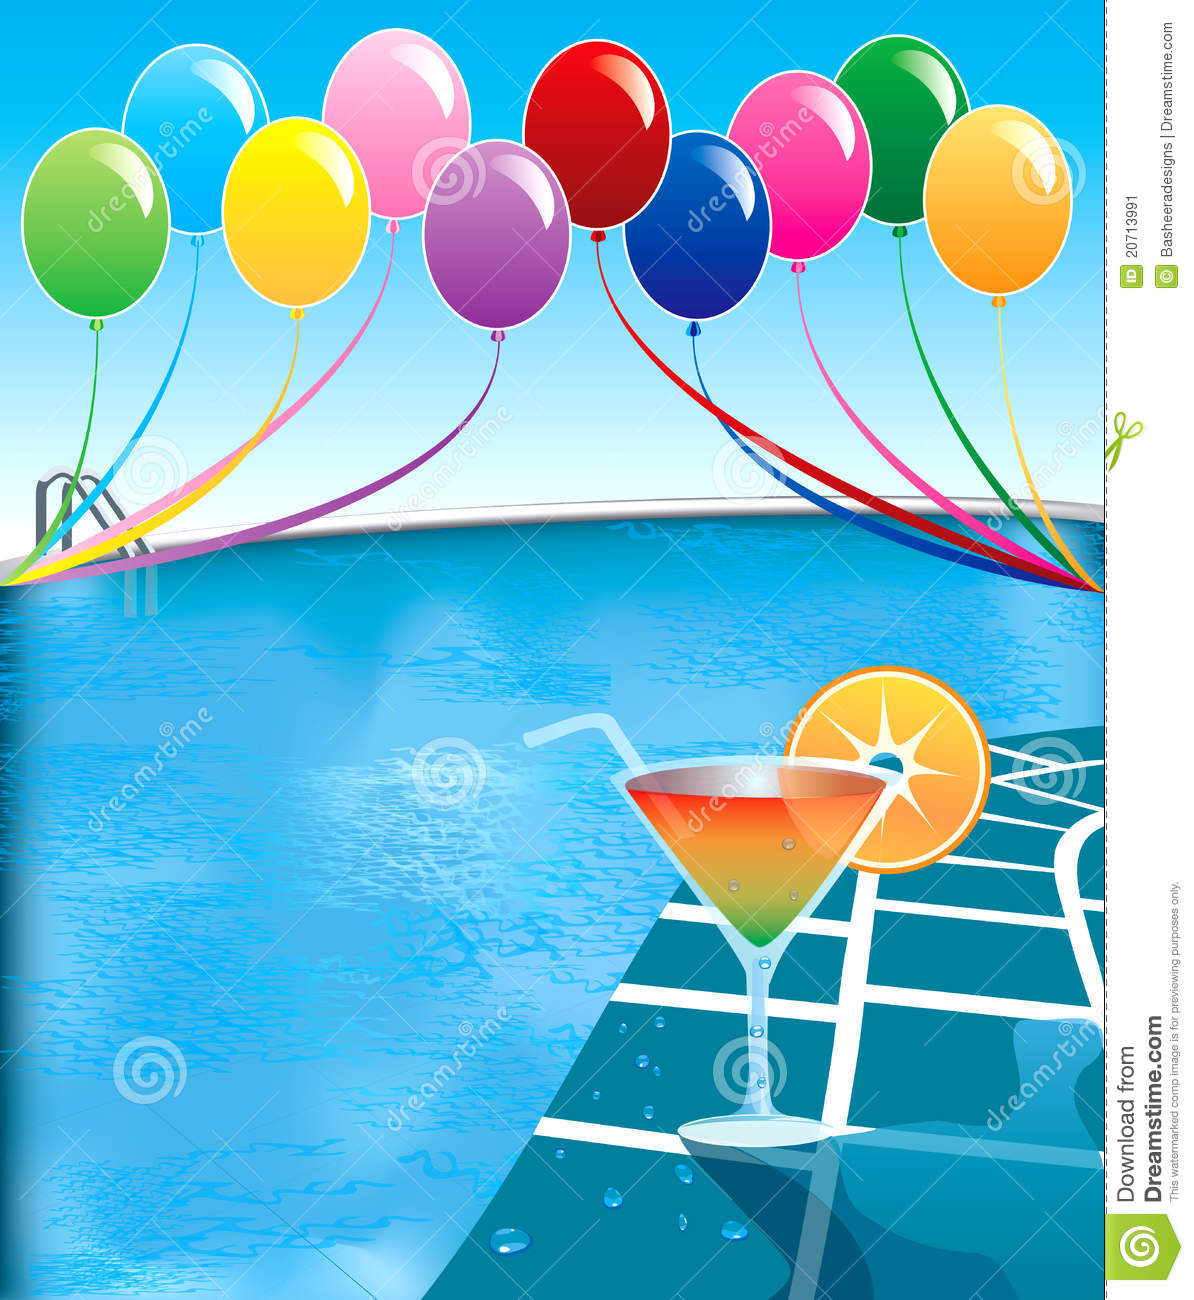 Pool party vektor abbildung bild von brosch re karte 20713991 for Free clipart swimming pool party